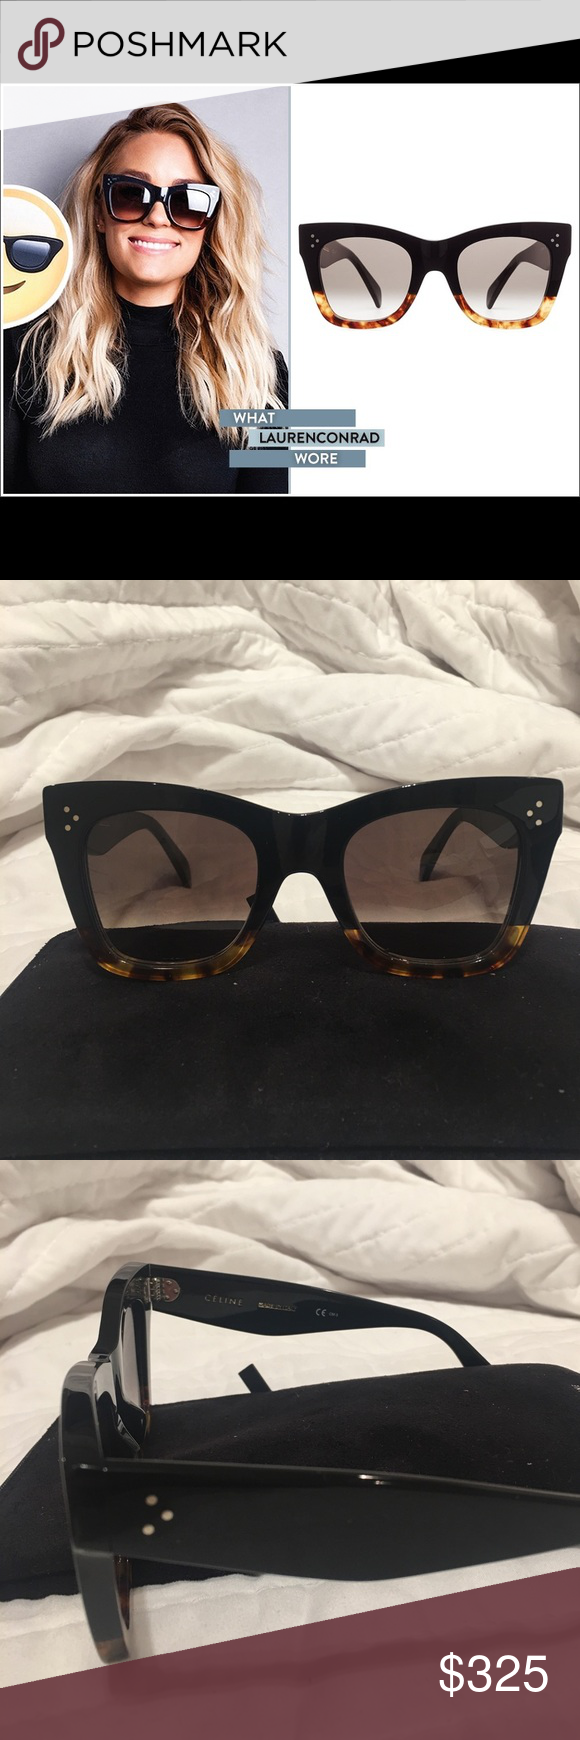 ccc44d911e9 Celine CL 41090 S Catherine Sunglasses Celine CL 41090 S Catherine  Sunglasses. Purchased online and they just don t fit my face like I hoped!